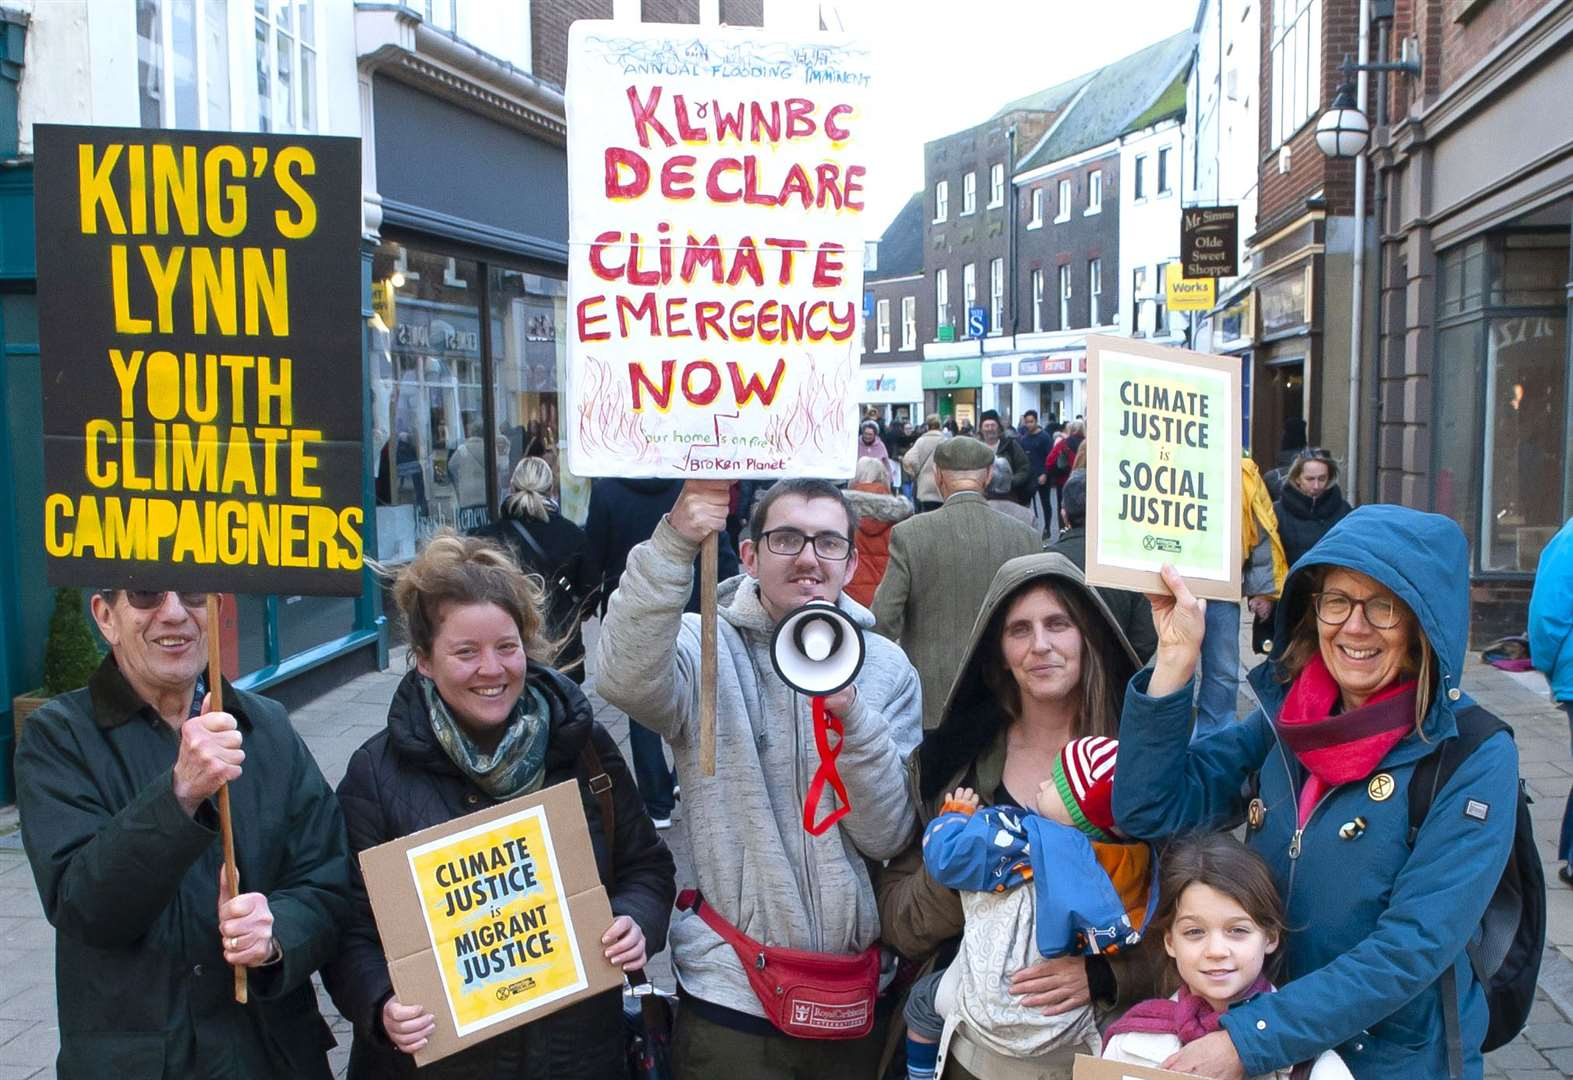 King's Lynn youth climate group meets in town for first protest of 2020